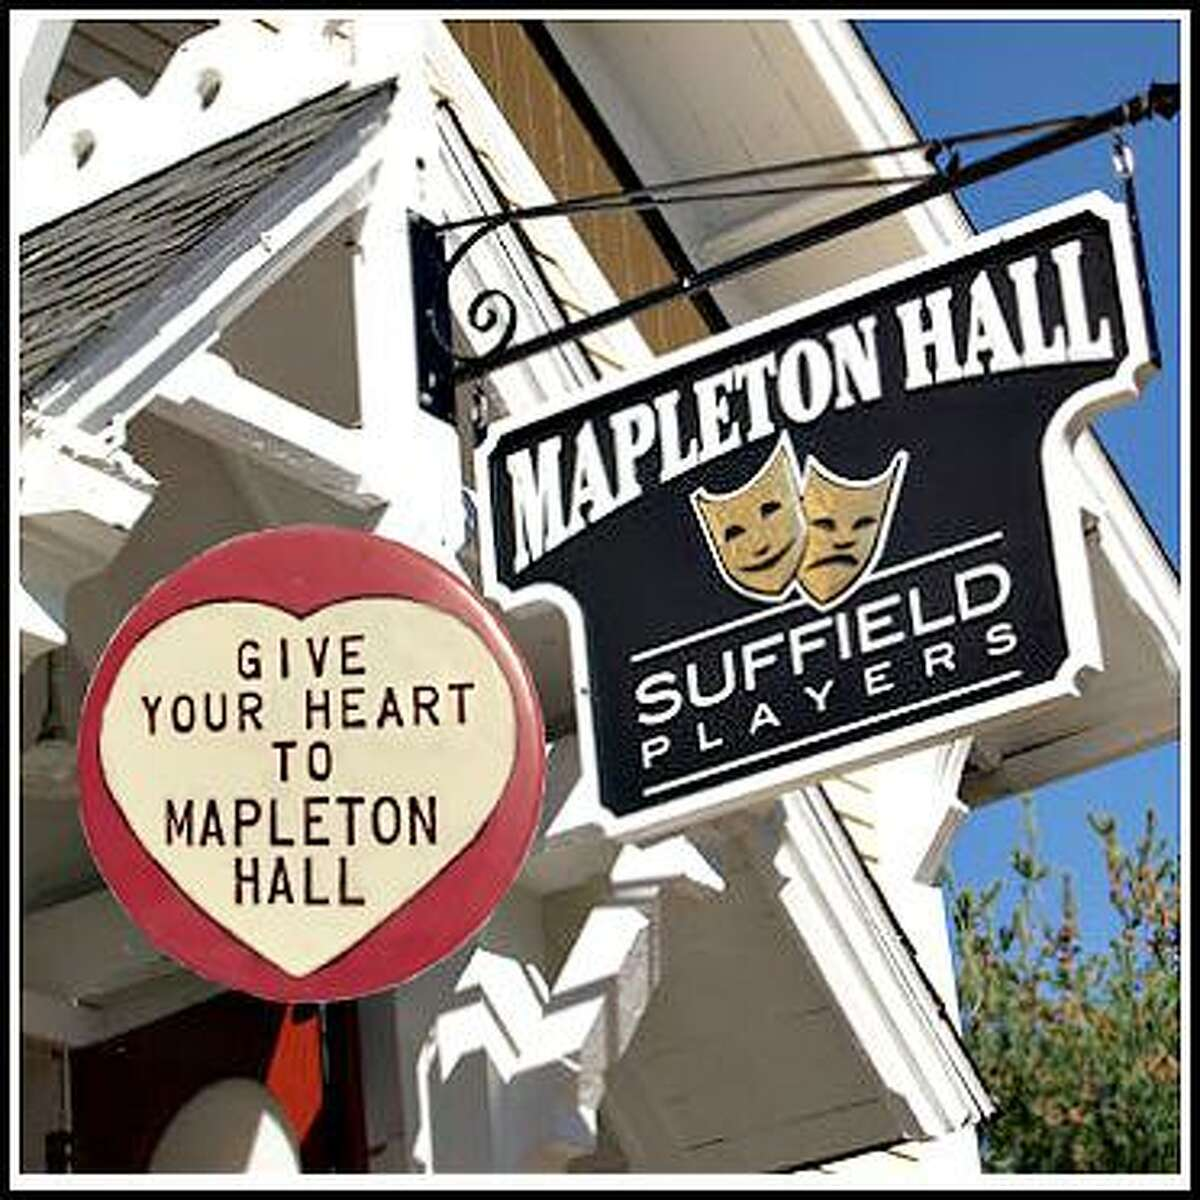 Until they can welcome the public back to their home at Mapleton Hall, the Suffield Players are preforming virtually, with support from organizations like the Chamber of Commerce.